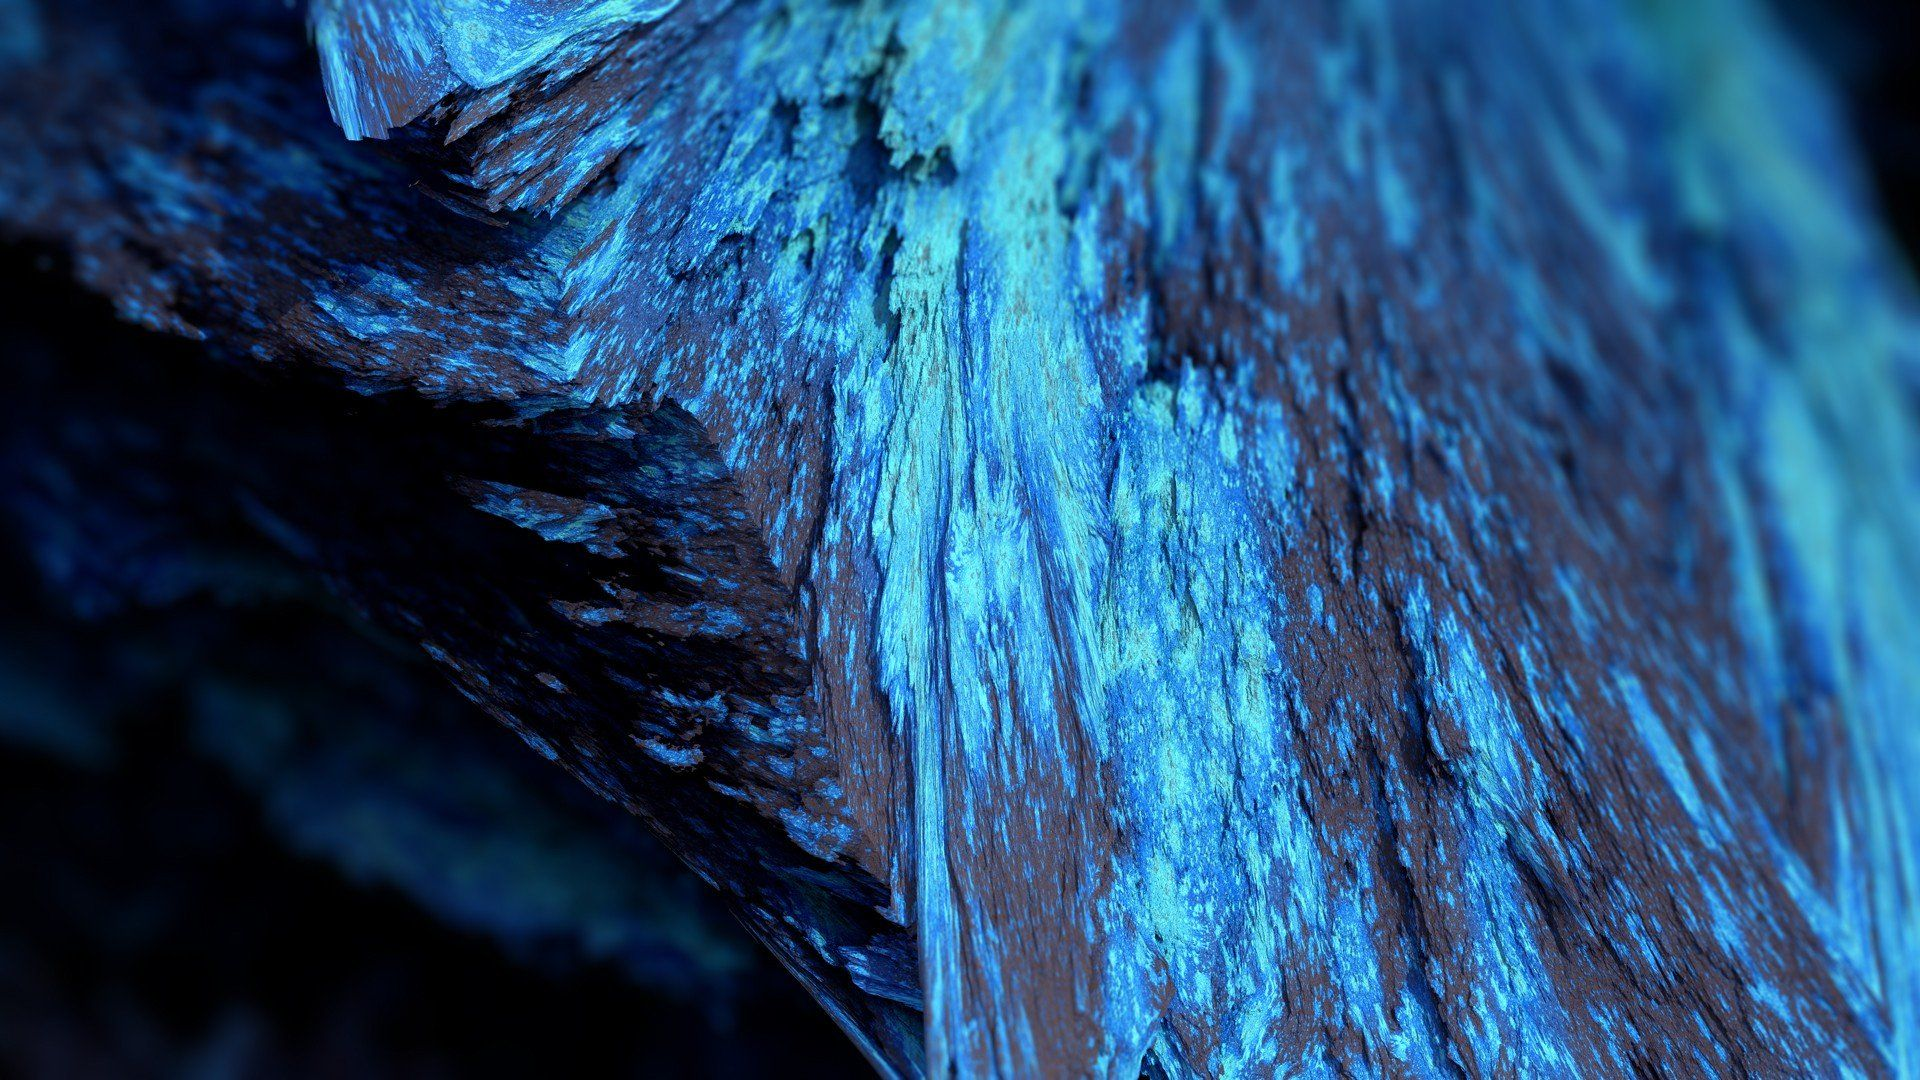 Abstract Rocks Formations High Definition Wallpaper Abstract Blue Abstract Painting Geometric Artwork